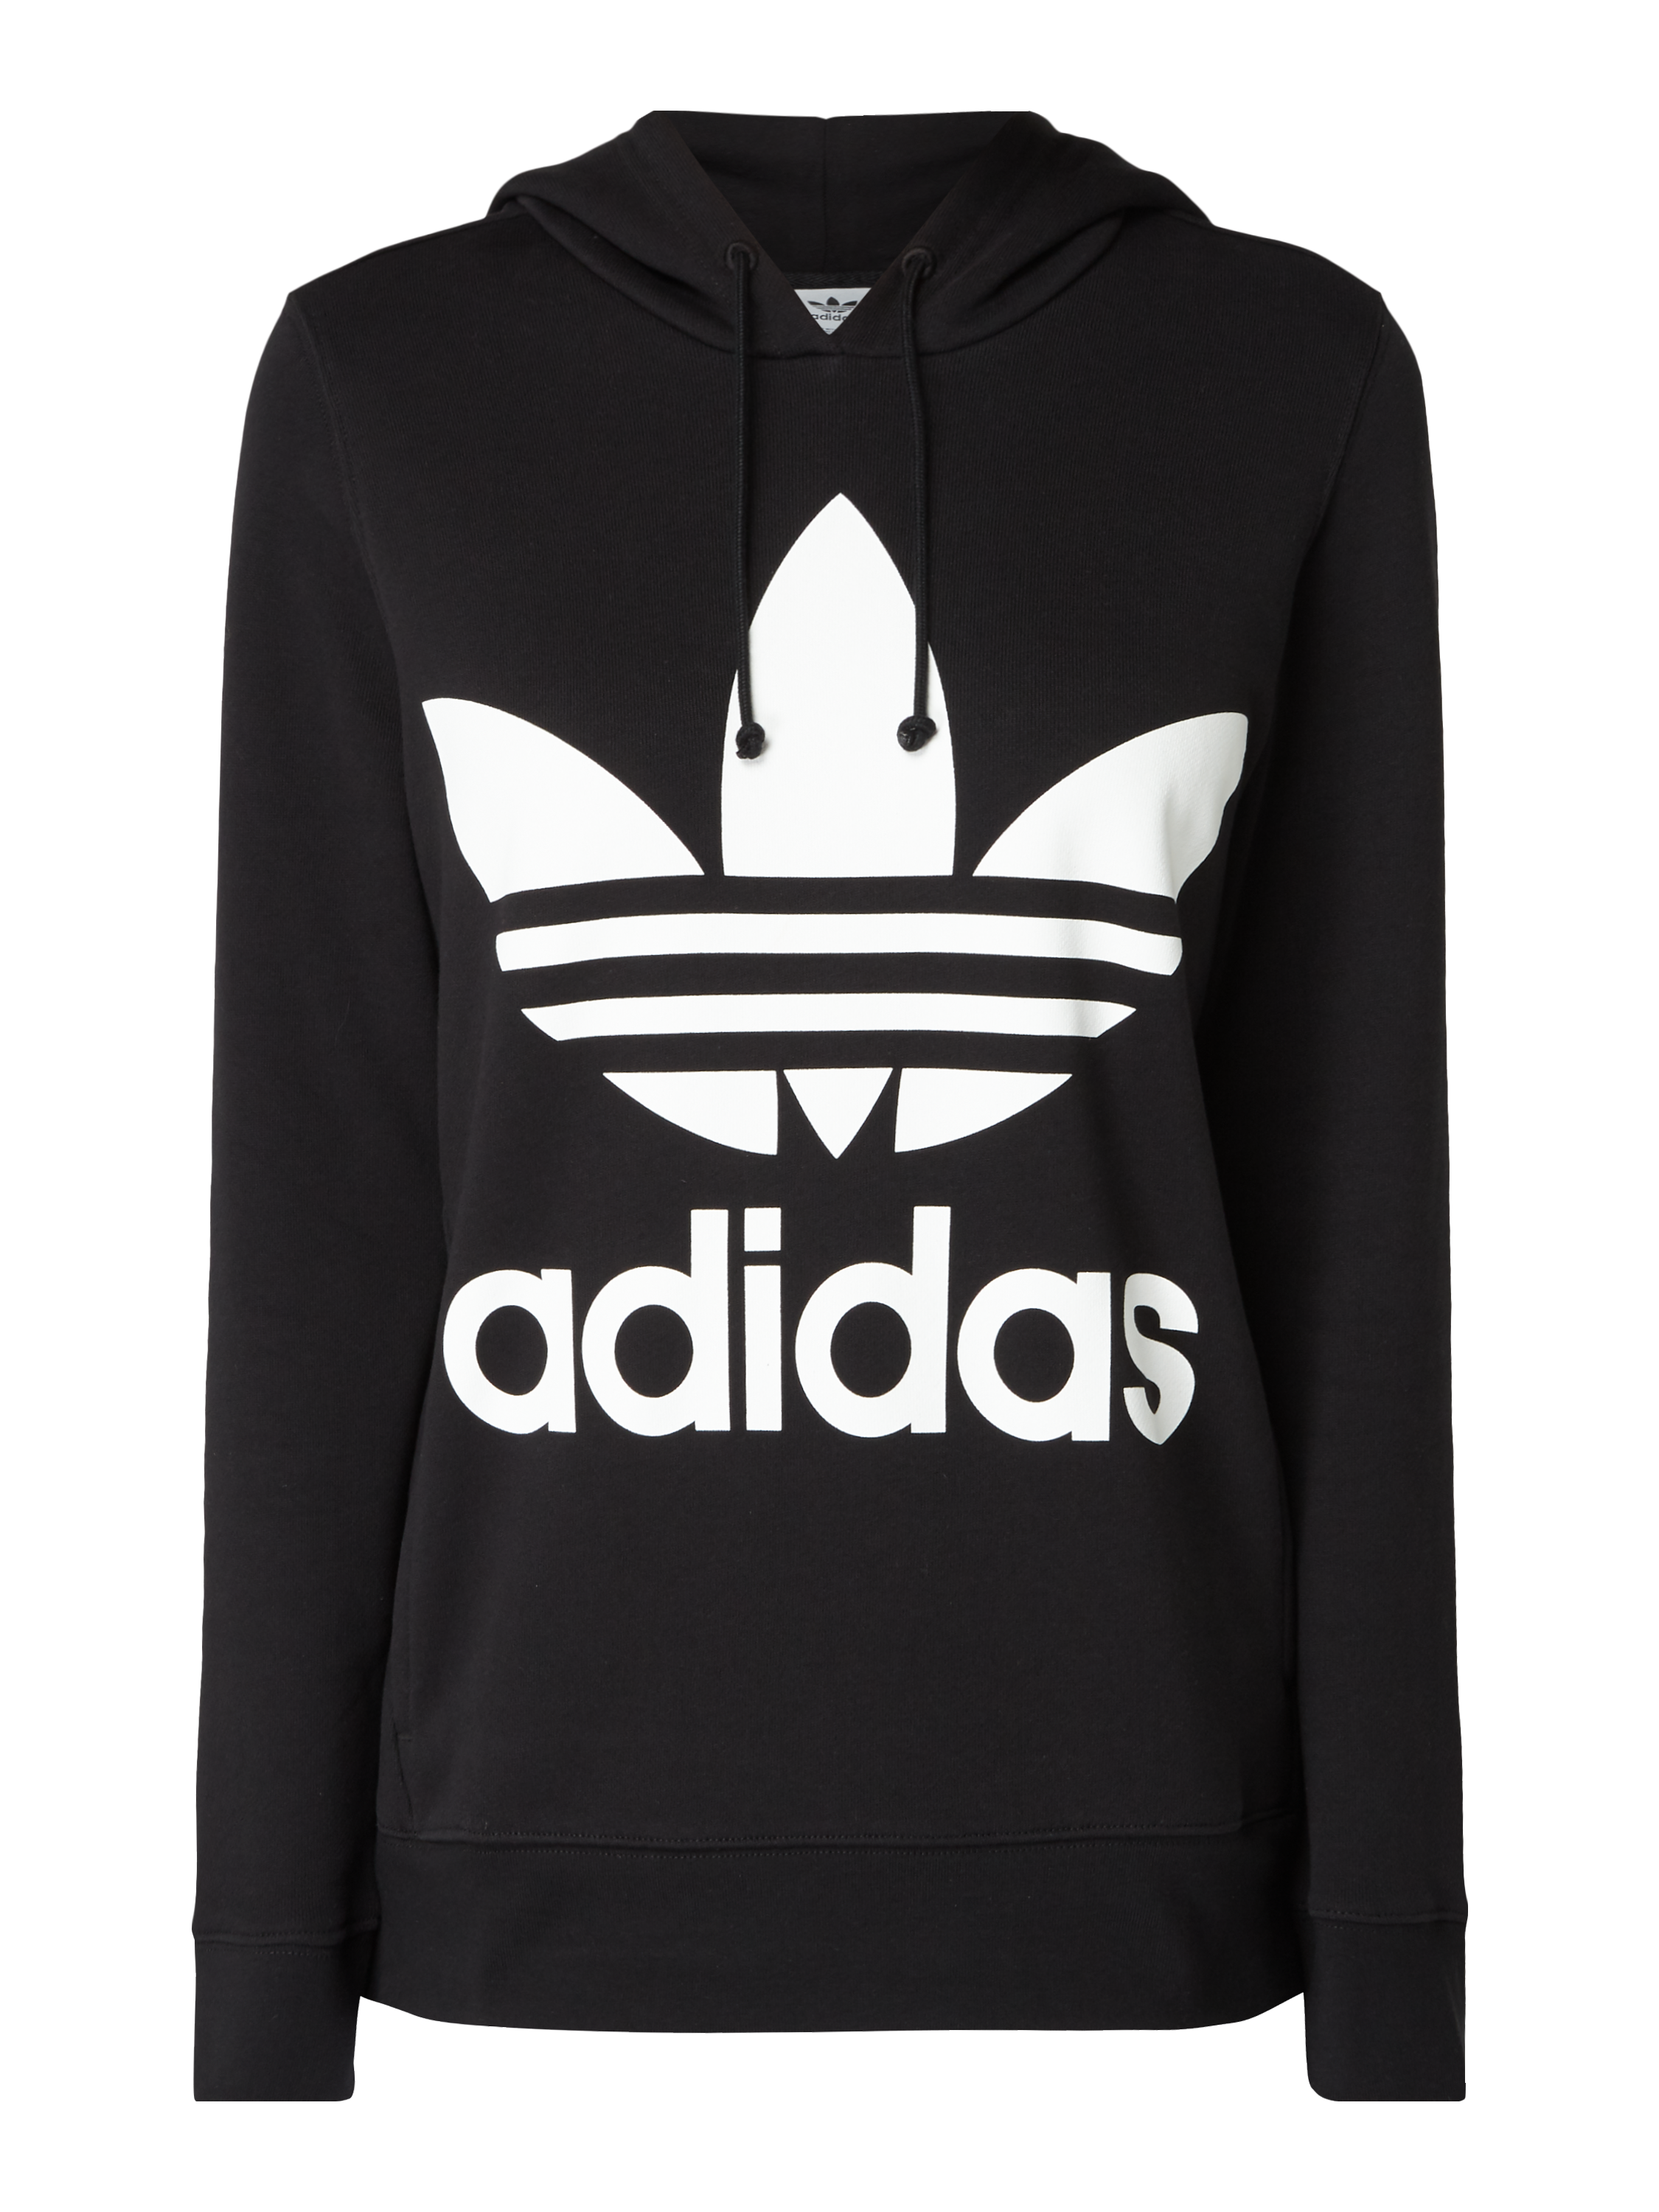 Seite 5 | Adidas Hoodie png | PNGWing